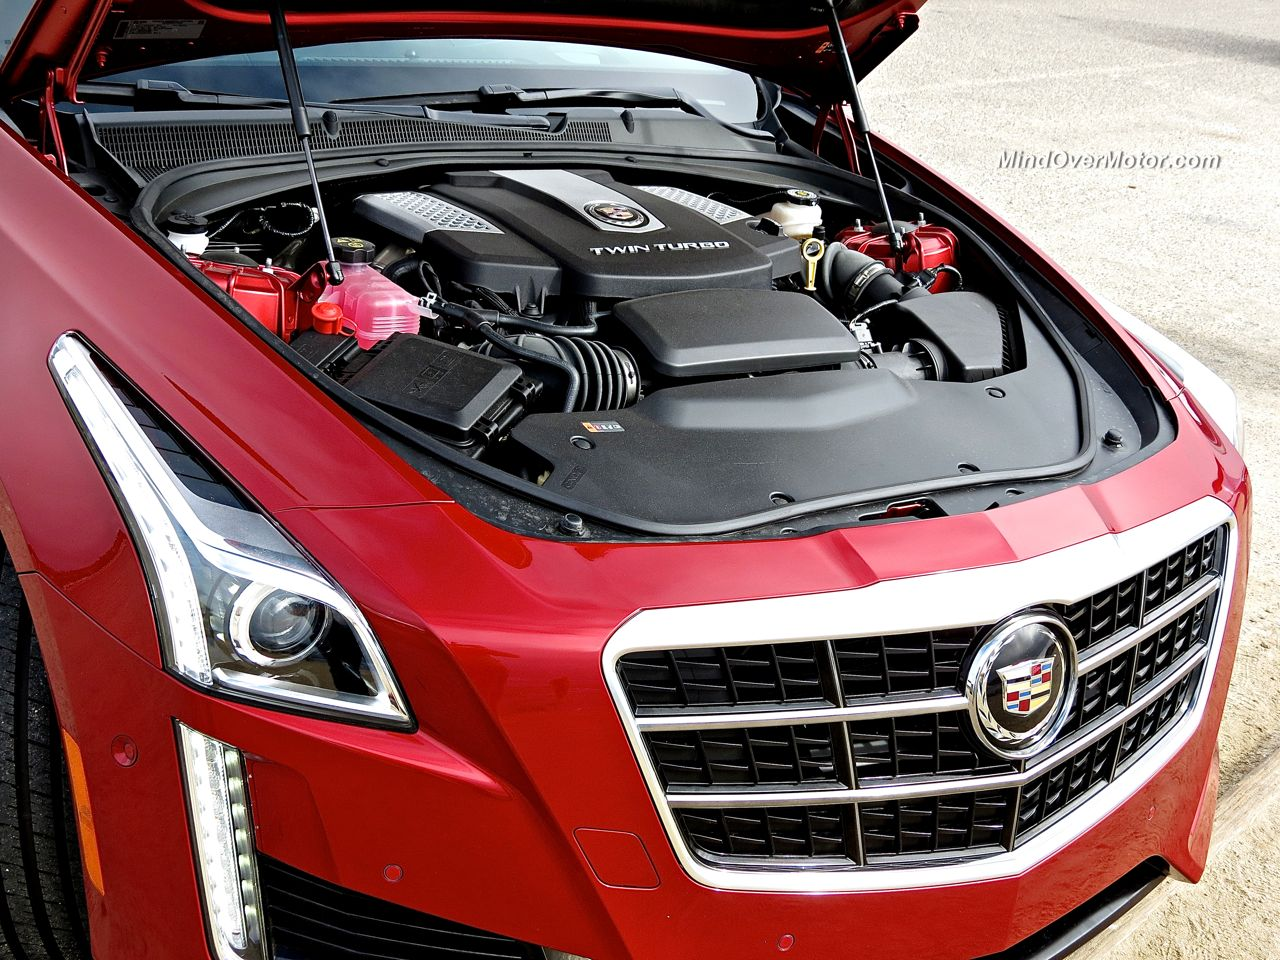 Cadillac CTS Vsport 3.6L V6 Twin Turbo